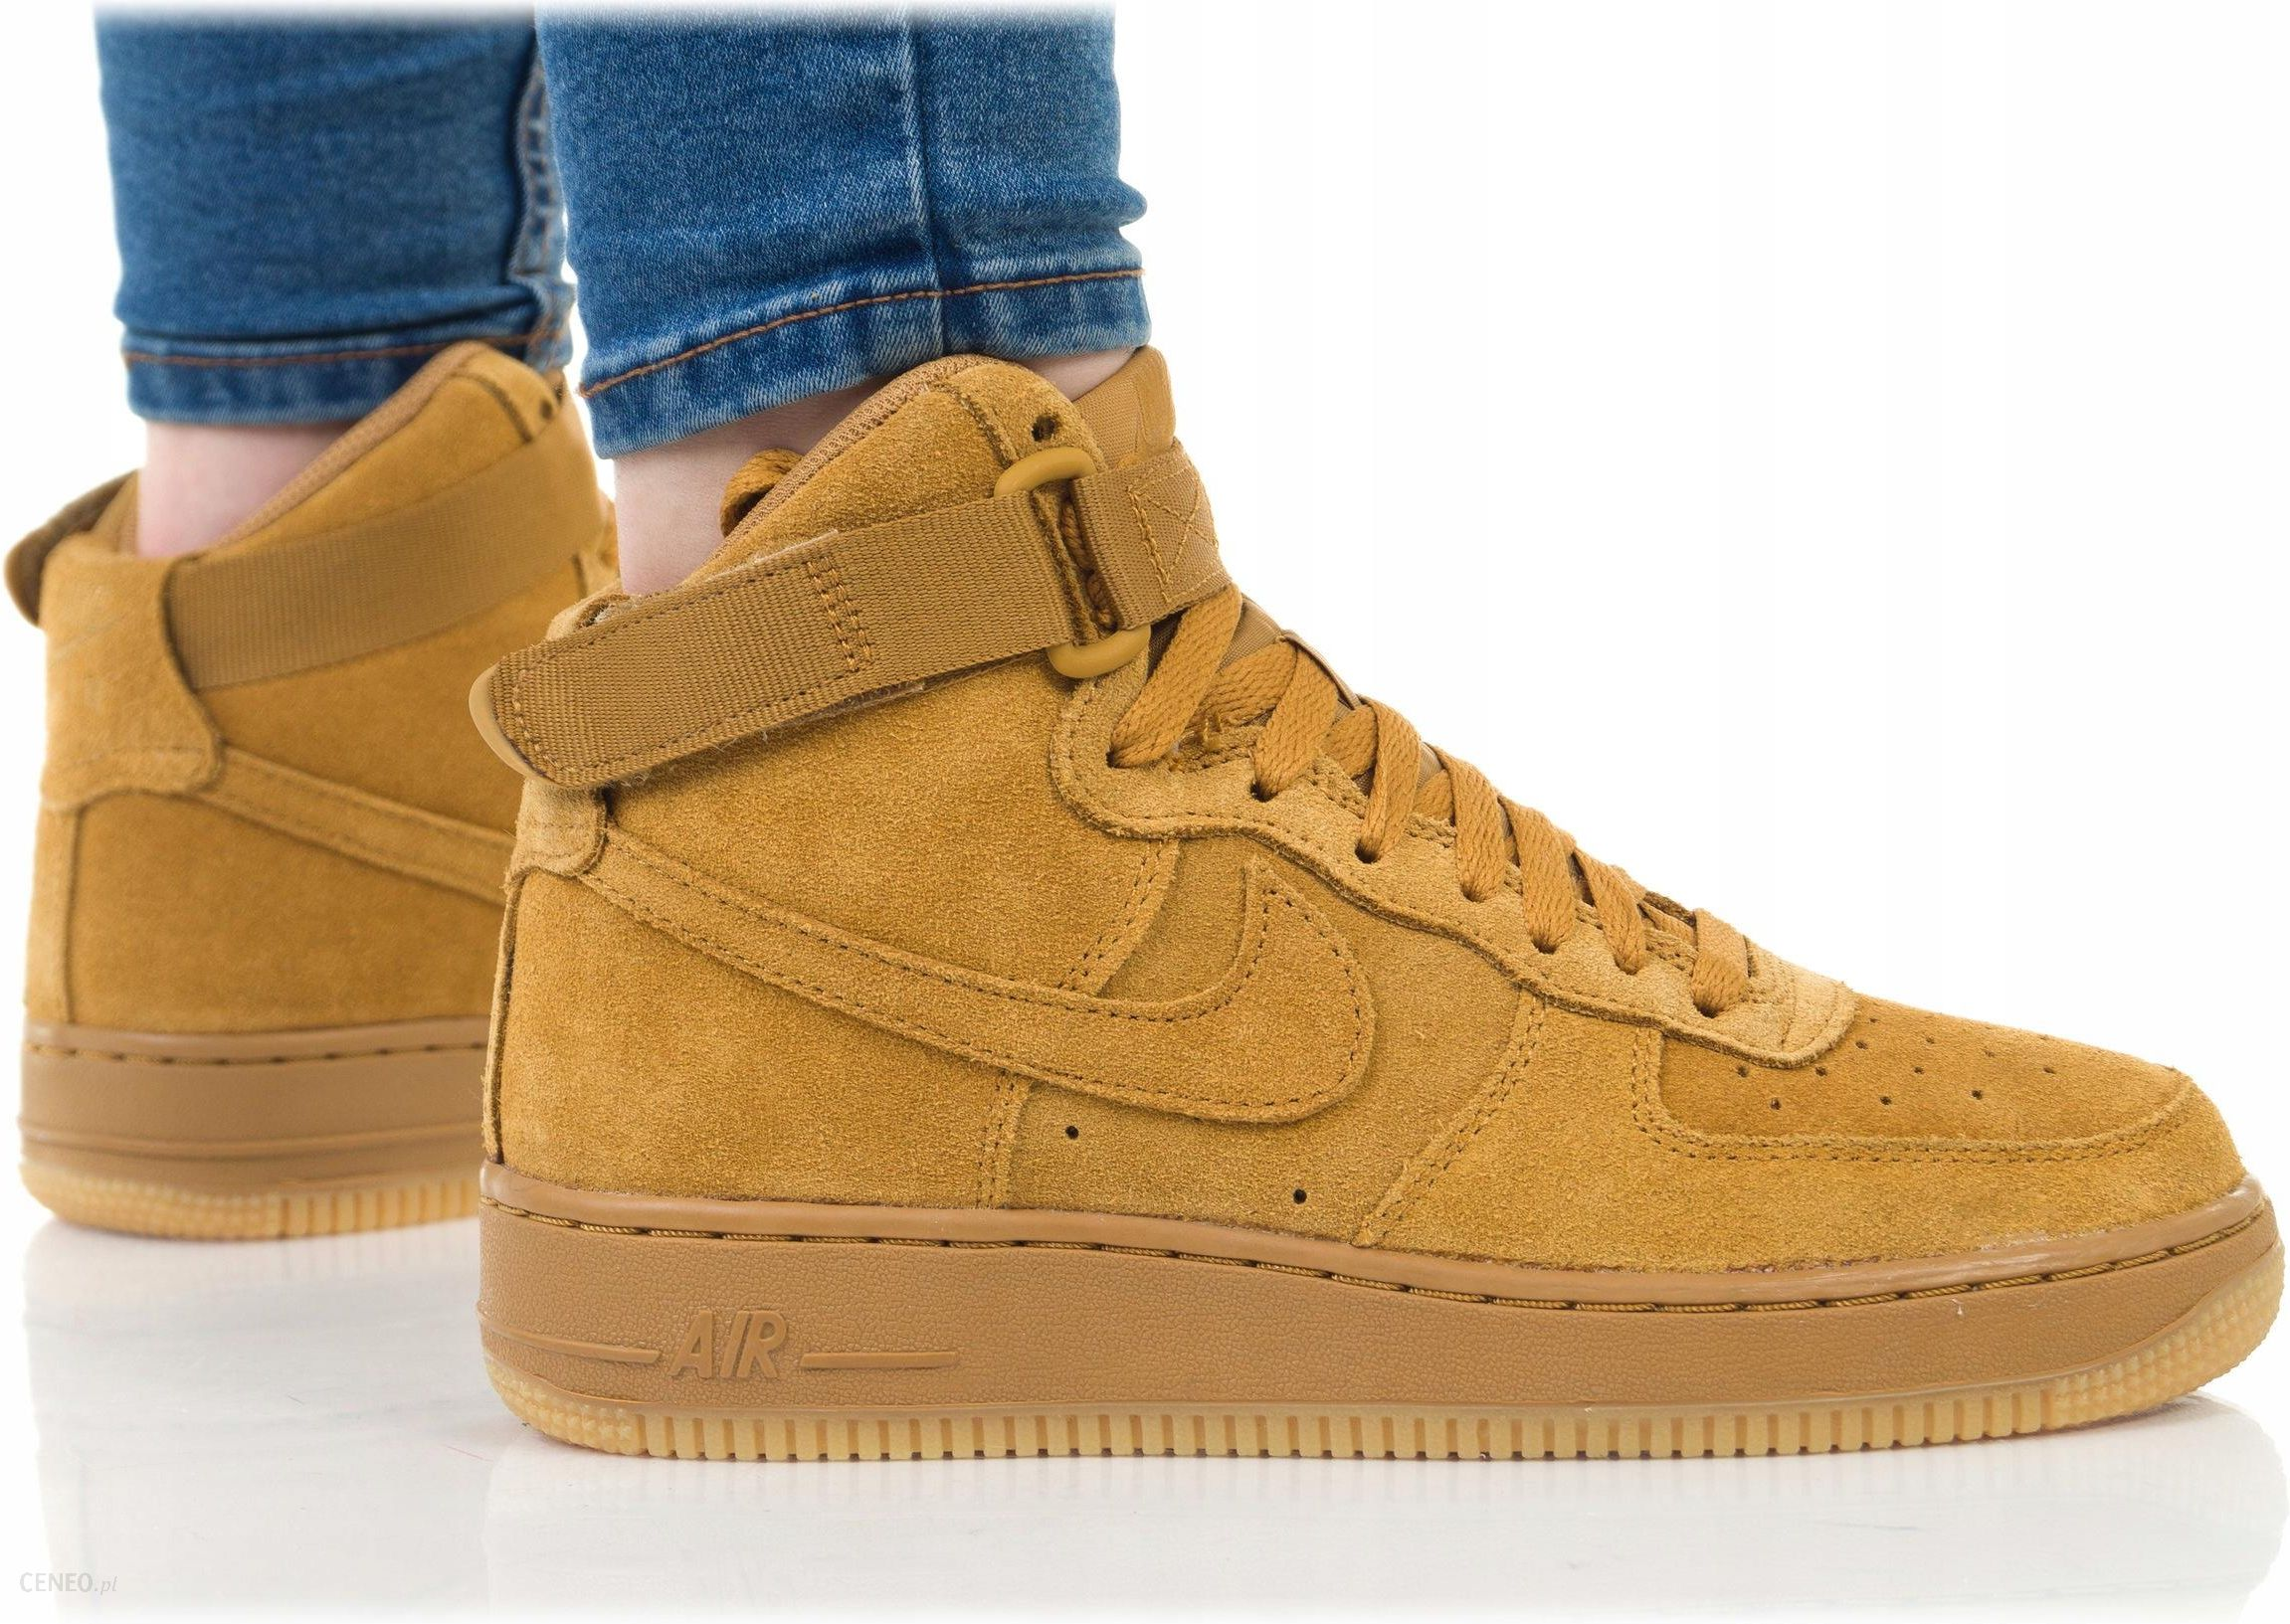 cheap for discount 243af 163c5 Buty Nike Damskie Air Force 1 High (gs) 807617-701 - zdjęcie 1